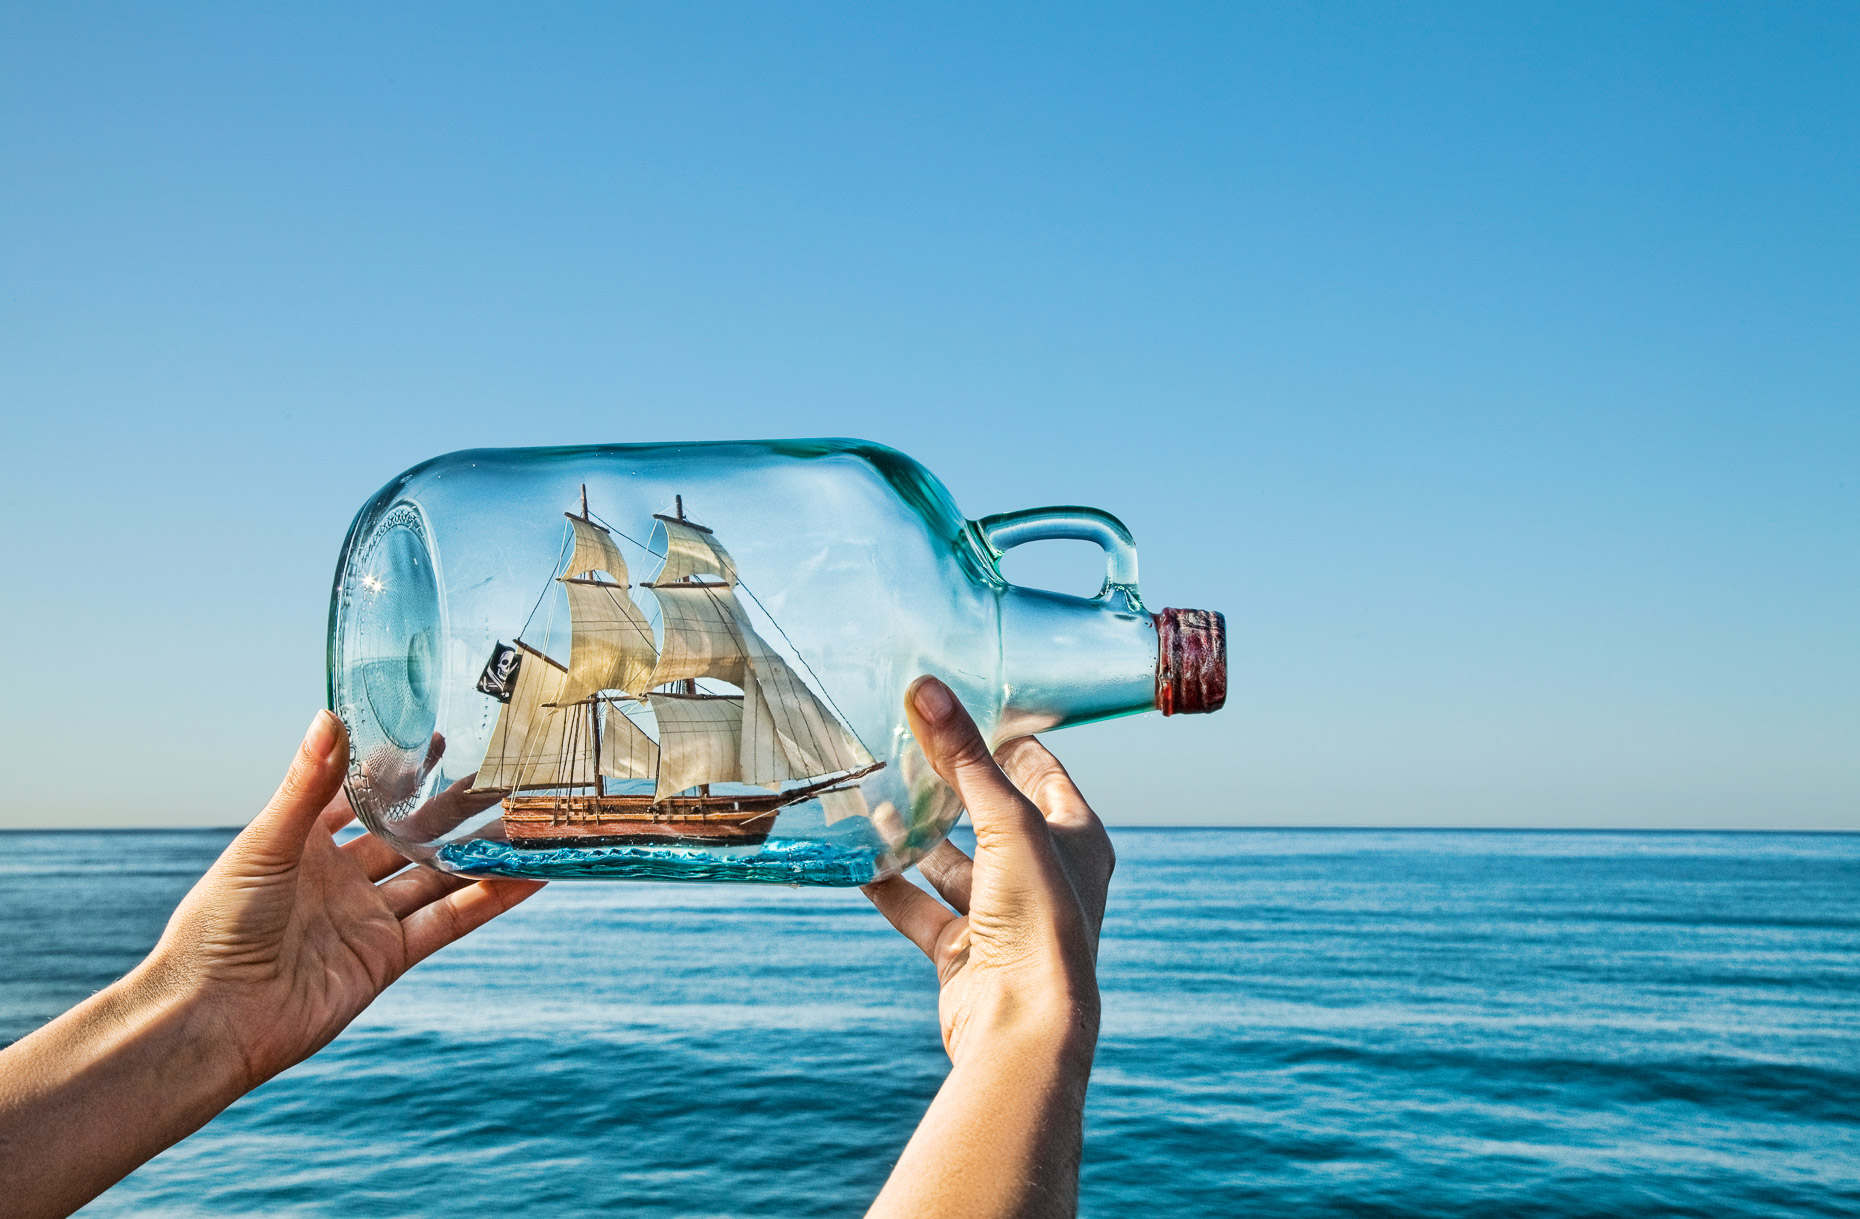 Female hands holding model ship in bottle against ocean horizon.